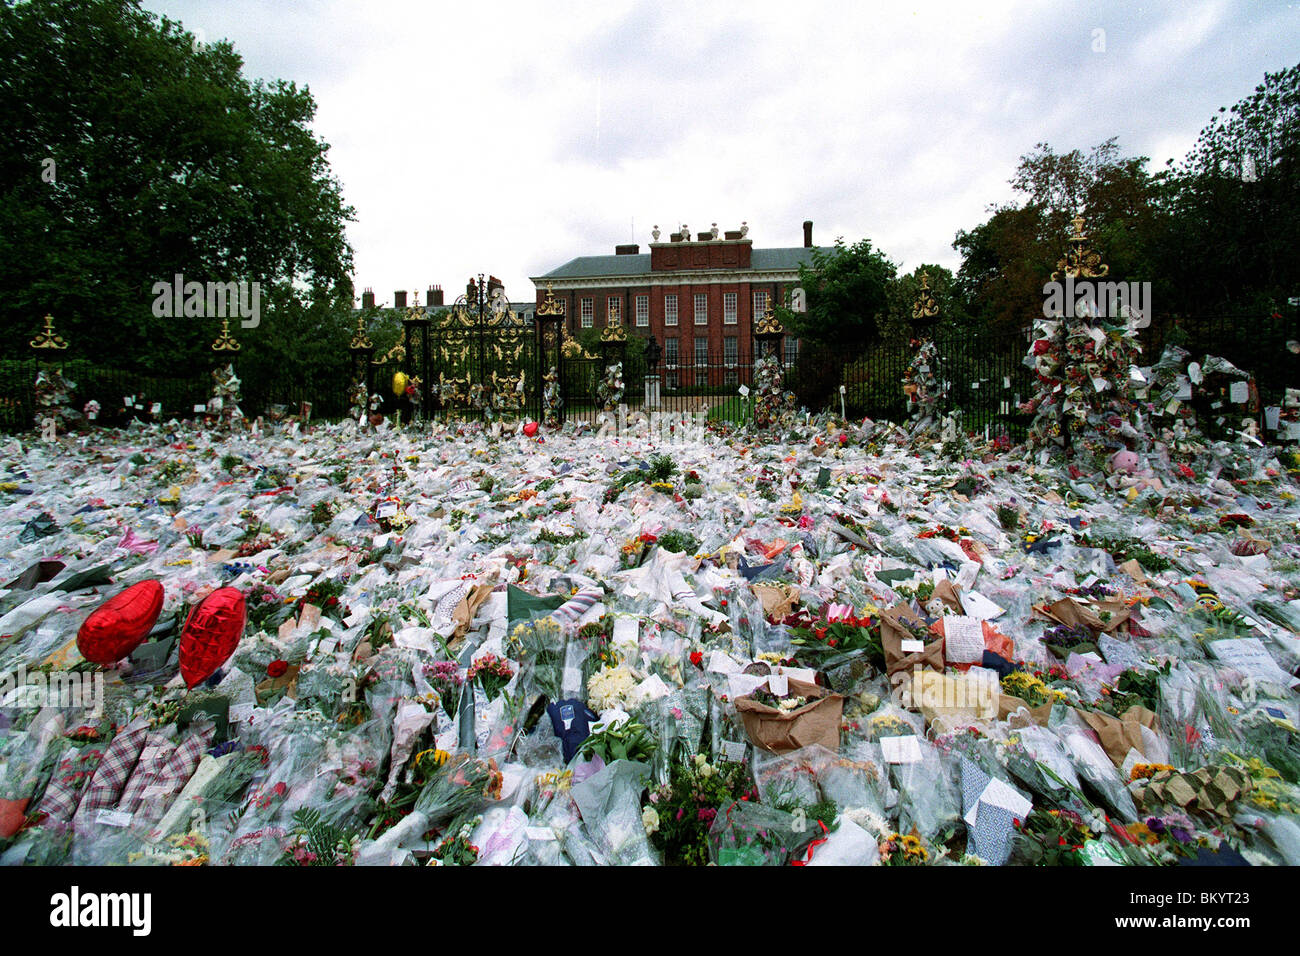 FLORAL TRIBUTES TO DIANA OUTSIDE KENSINGTON PALACE 14 September 1997 - Stock Image